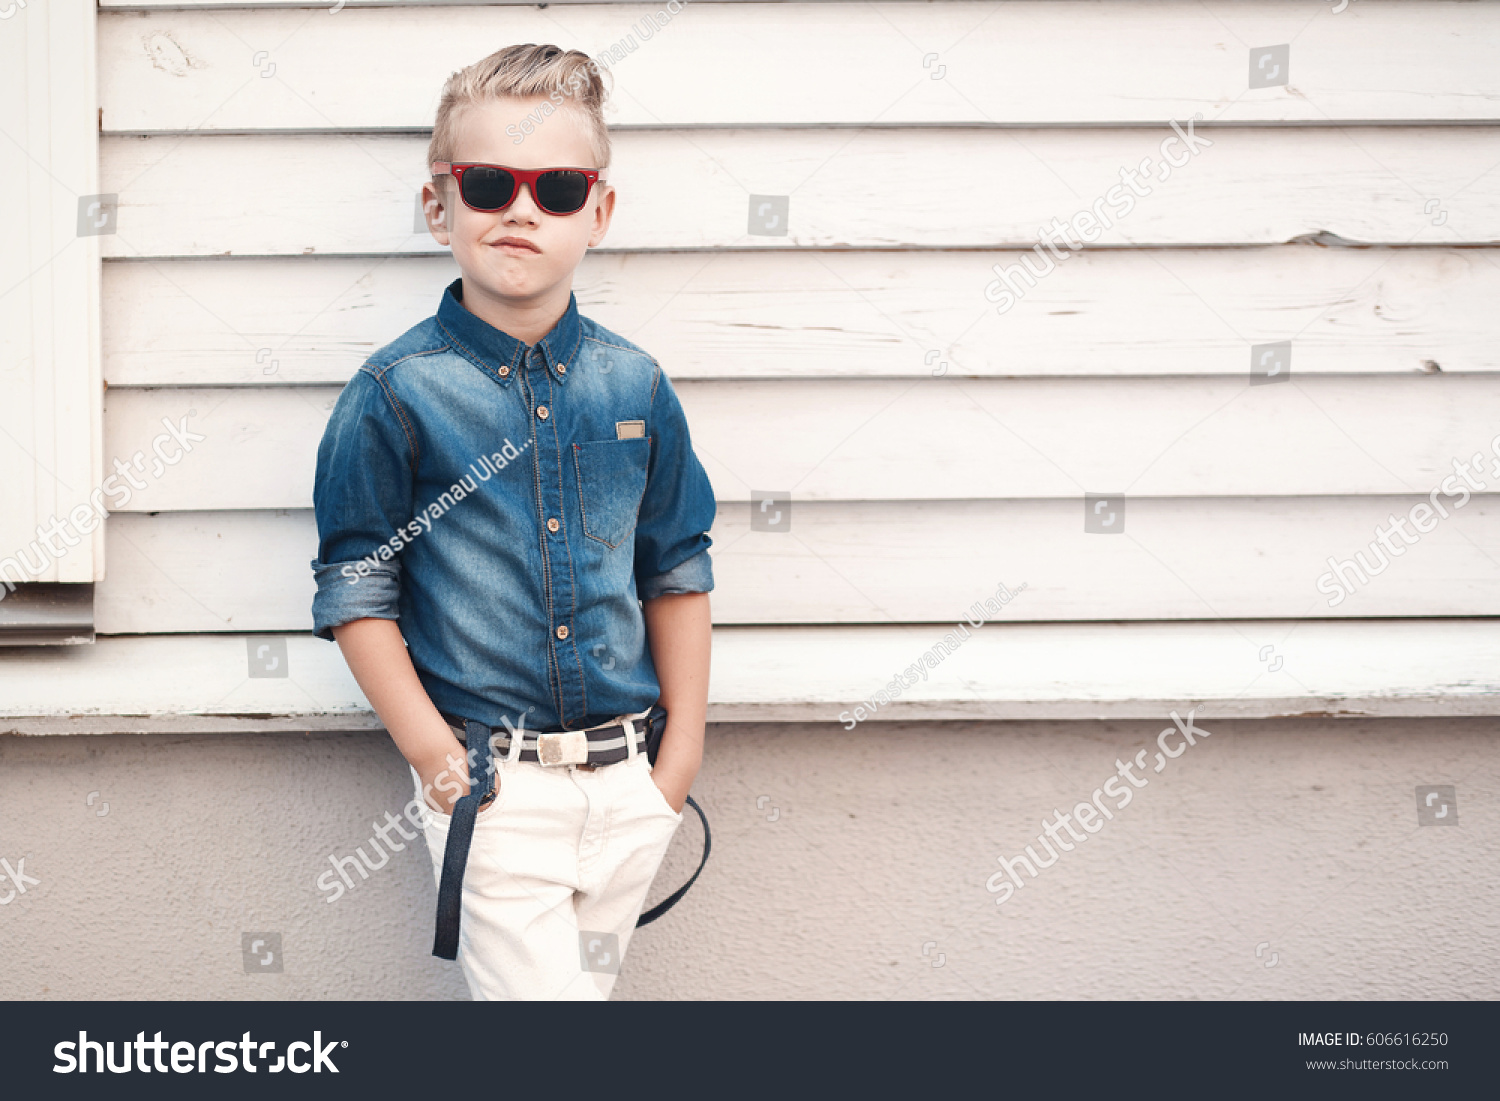 6c0c82111 Fashion Kid Summer City Stands On Stock Photo (Edit Now) 606616250 ...